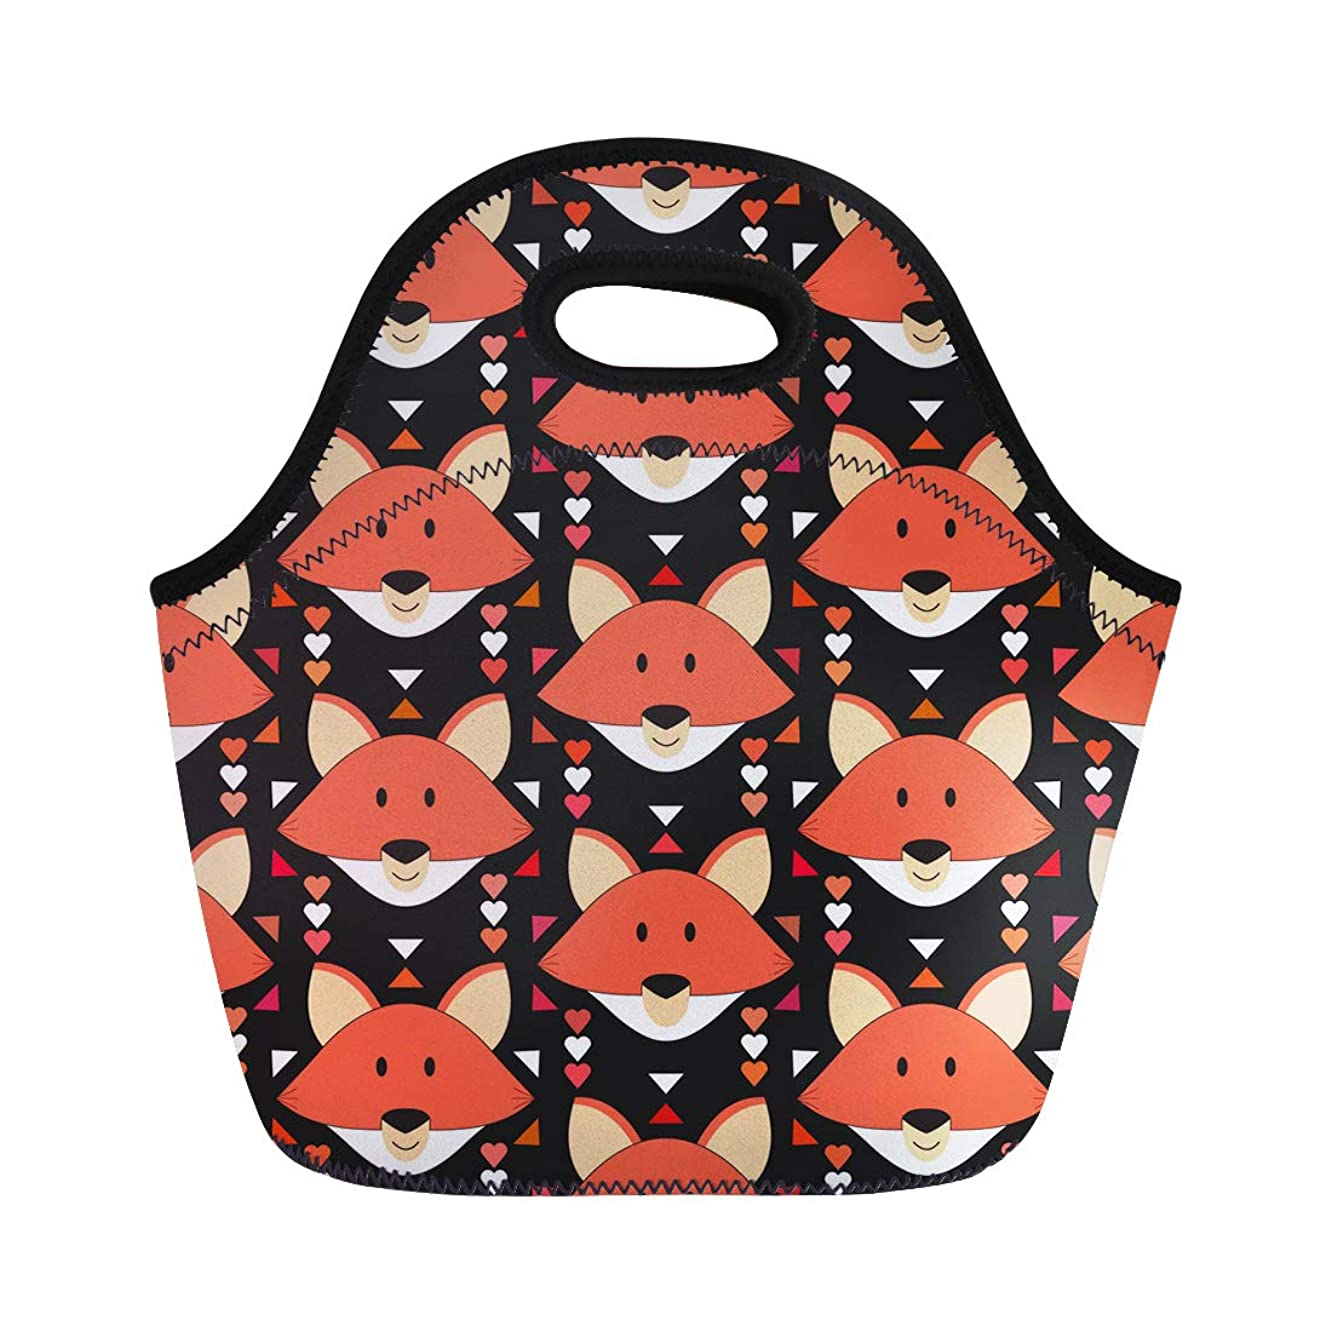 Semtomn Neoprene Lunch Tote Bag Cute Fox Forest Animals Orange Head in Abstract Tribal Reusable Cooler Bags Insulated Thermal Picnic Handbag for Travel,School,Outdoors, Work